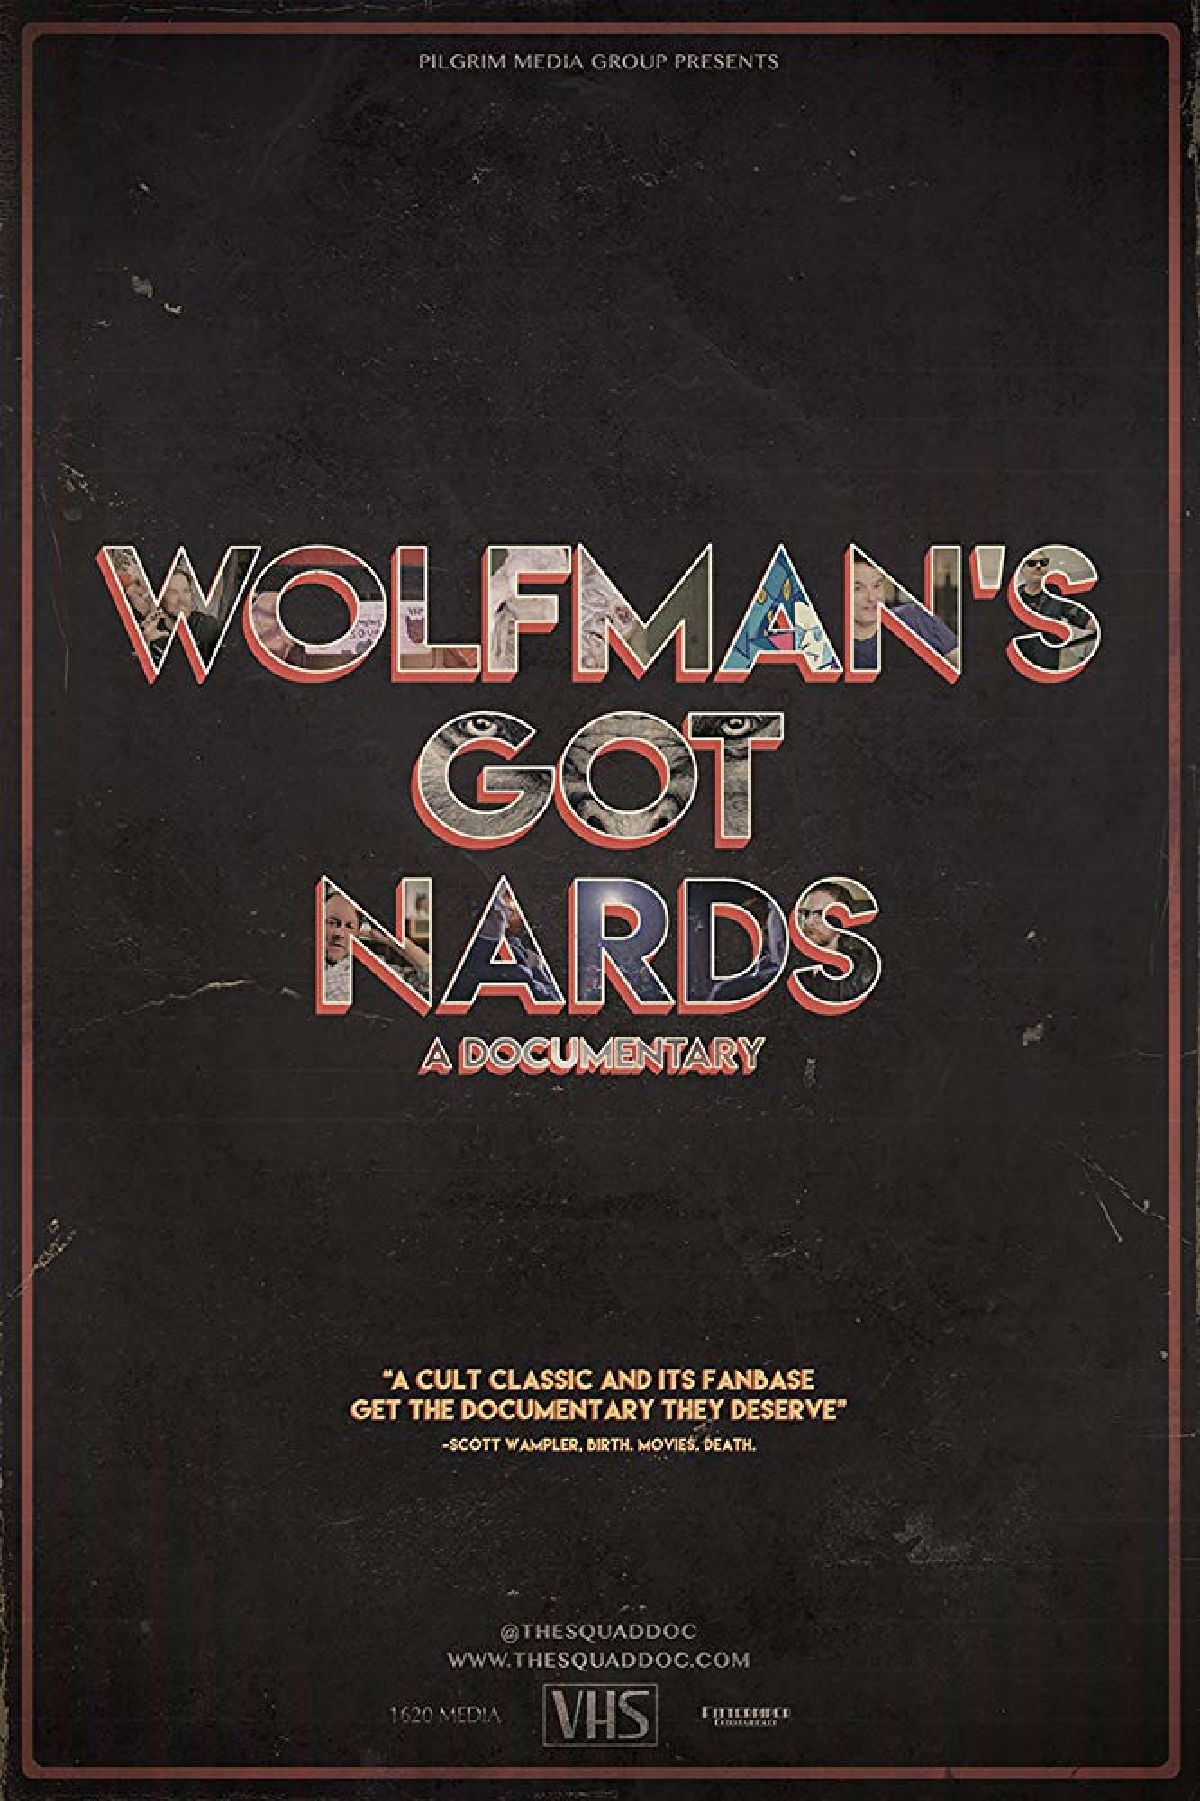 'Wolfman's Got Nards' movie poster